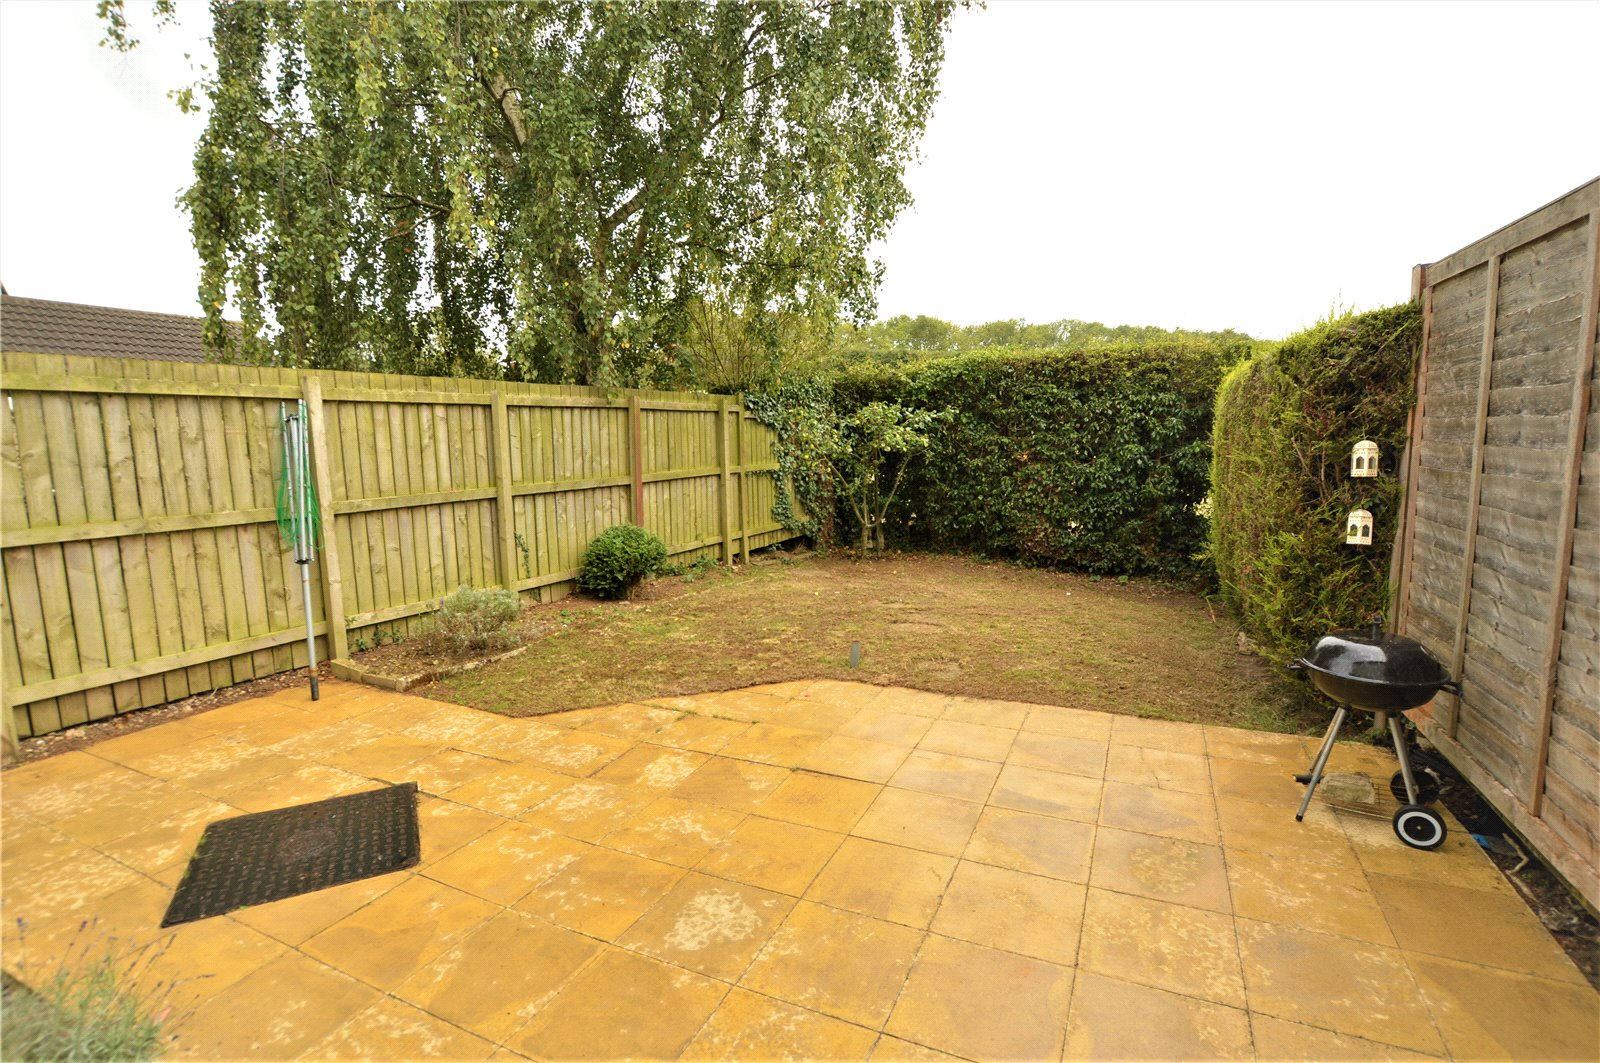 Property for sale in Wetherby, garden